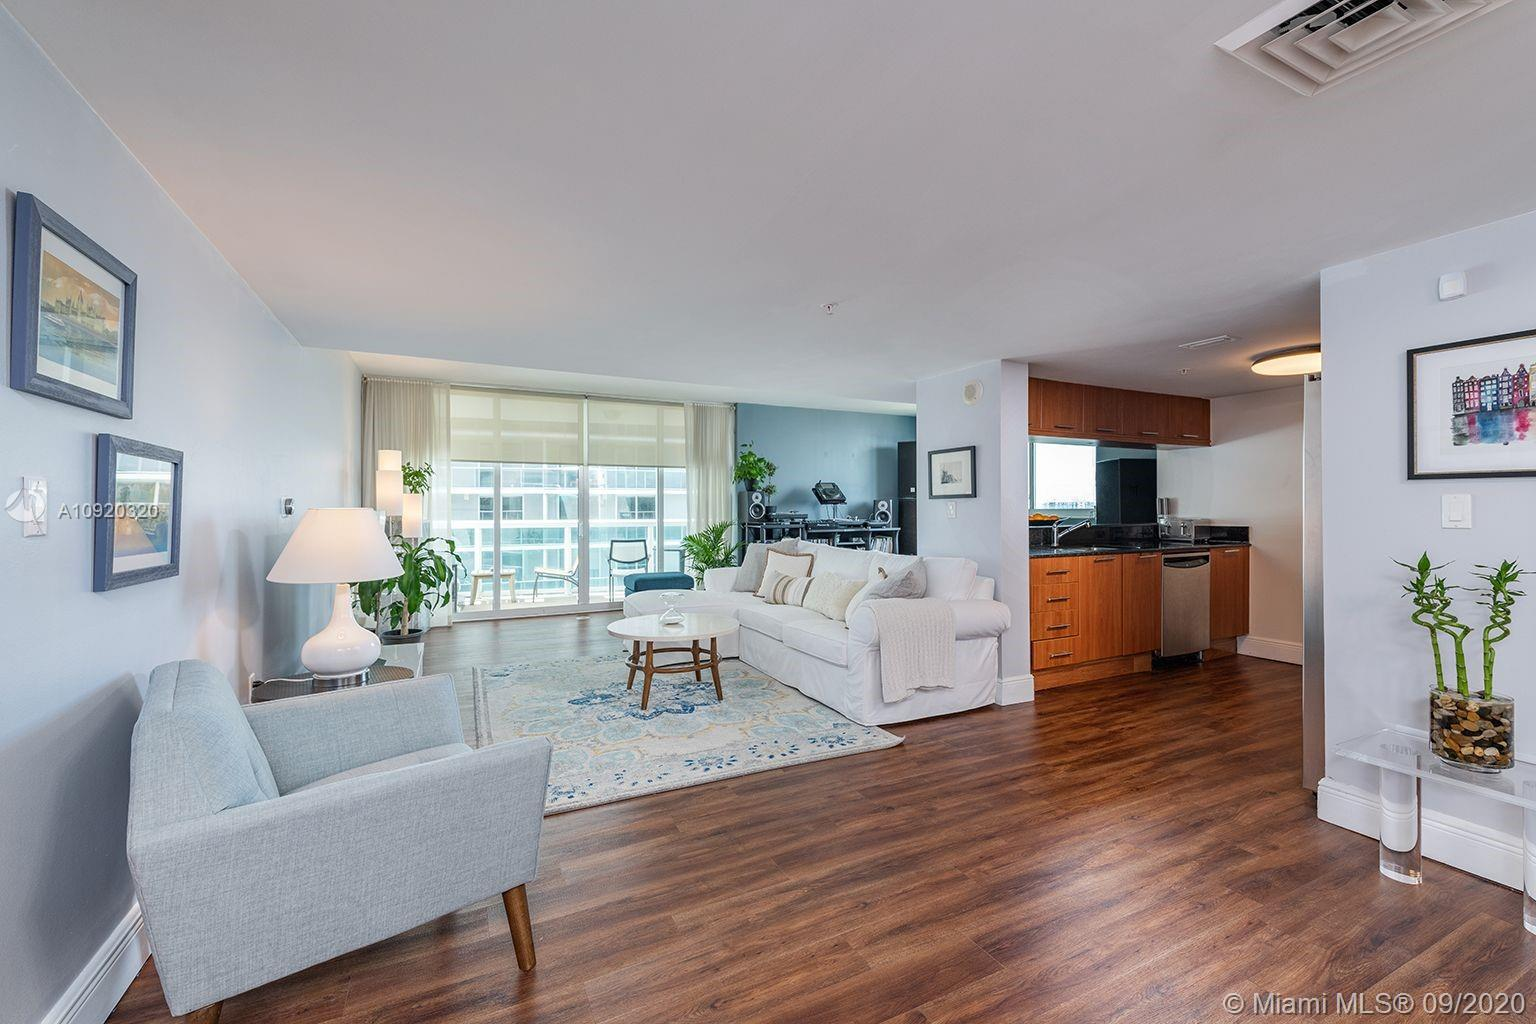 Bright and spacious corner unit in the top level of its line at 1800 Club in Miami's Edgewater neighborhood. Featuring 1800 square feet of living space and 200 square feet of patio space spanning separate balconies: gorgeous urban sunsets on one side, with the other postcard-worthy serene bay and ocean views. Huge 34' by 13' great room beams with natural light and offers multiple setups for living, dining, and den areas and multilayered privacy blinds and curtains, with easy access to the open kitchen which has granite countertops and stainless steel appliances 2 large bedrooms have attached bathrooms, and large equal-sized walk in closets with beautiful cabinetry and shelving. In addition to walk-in, master bedroom contains separate office area with desk and shelving.